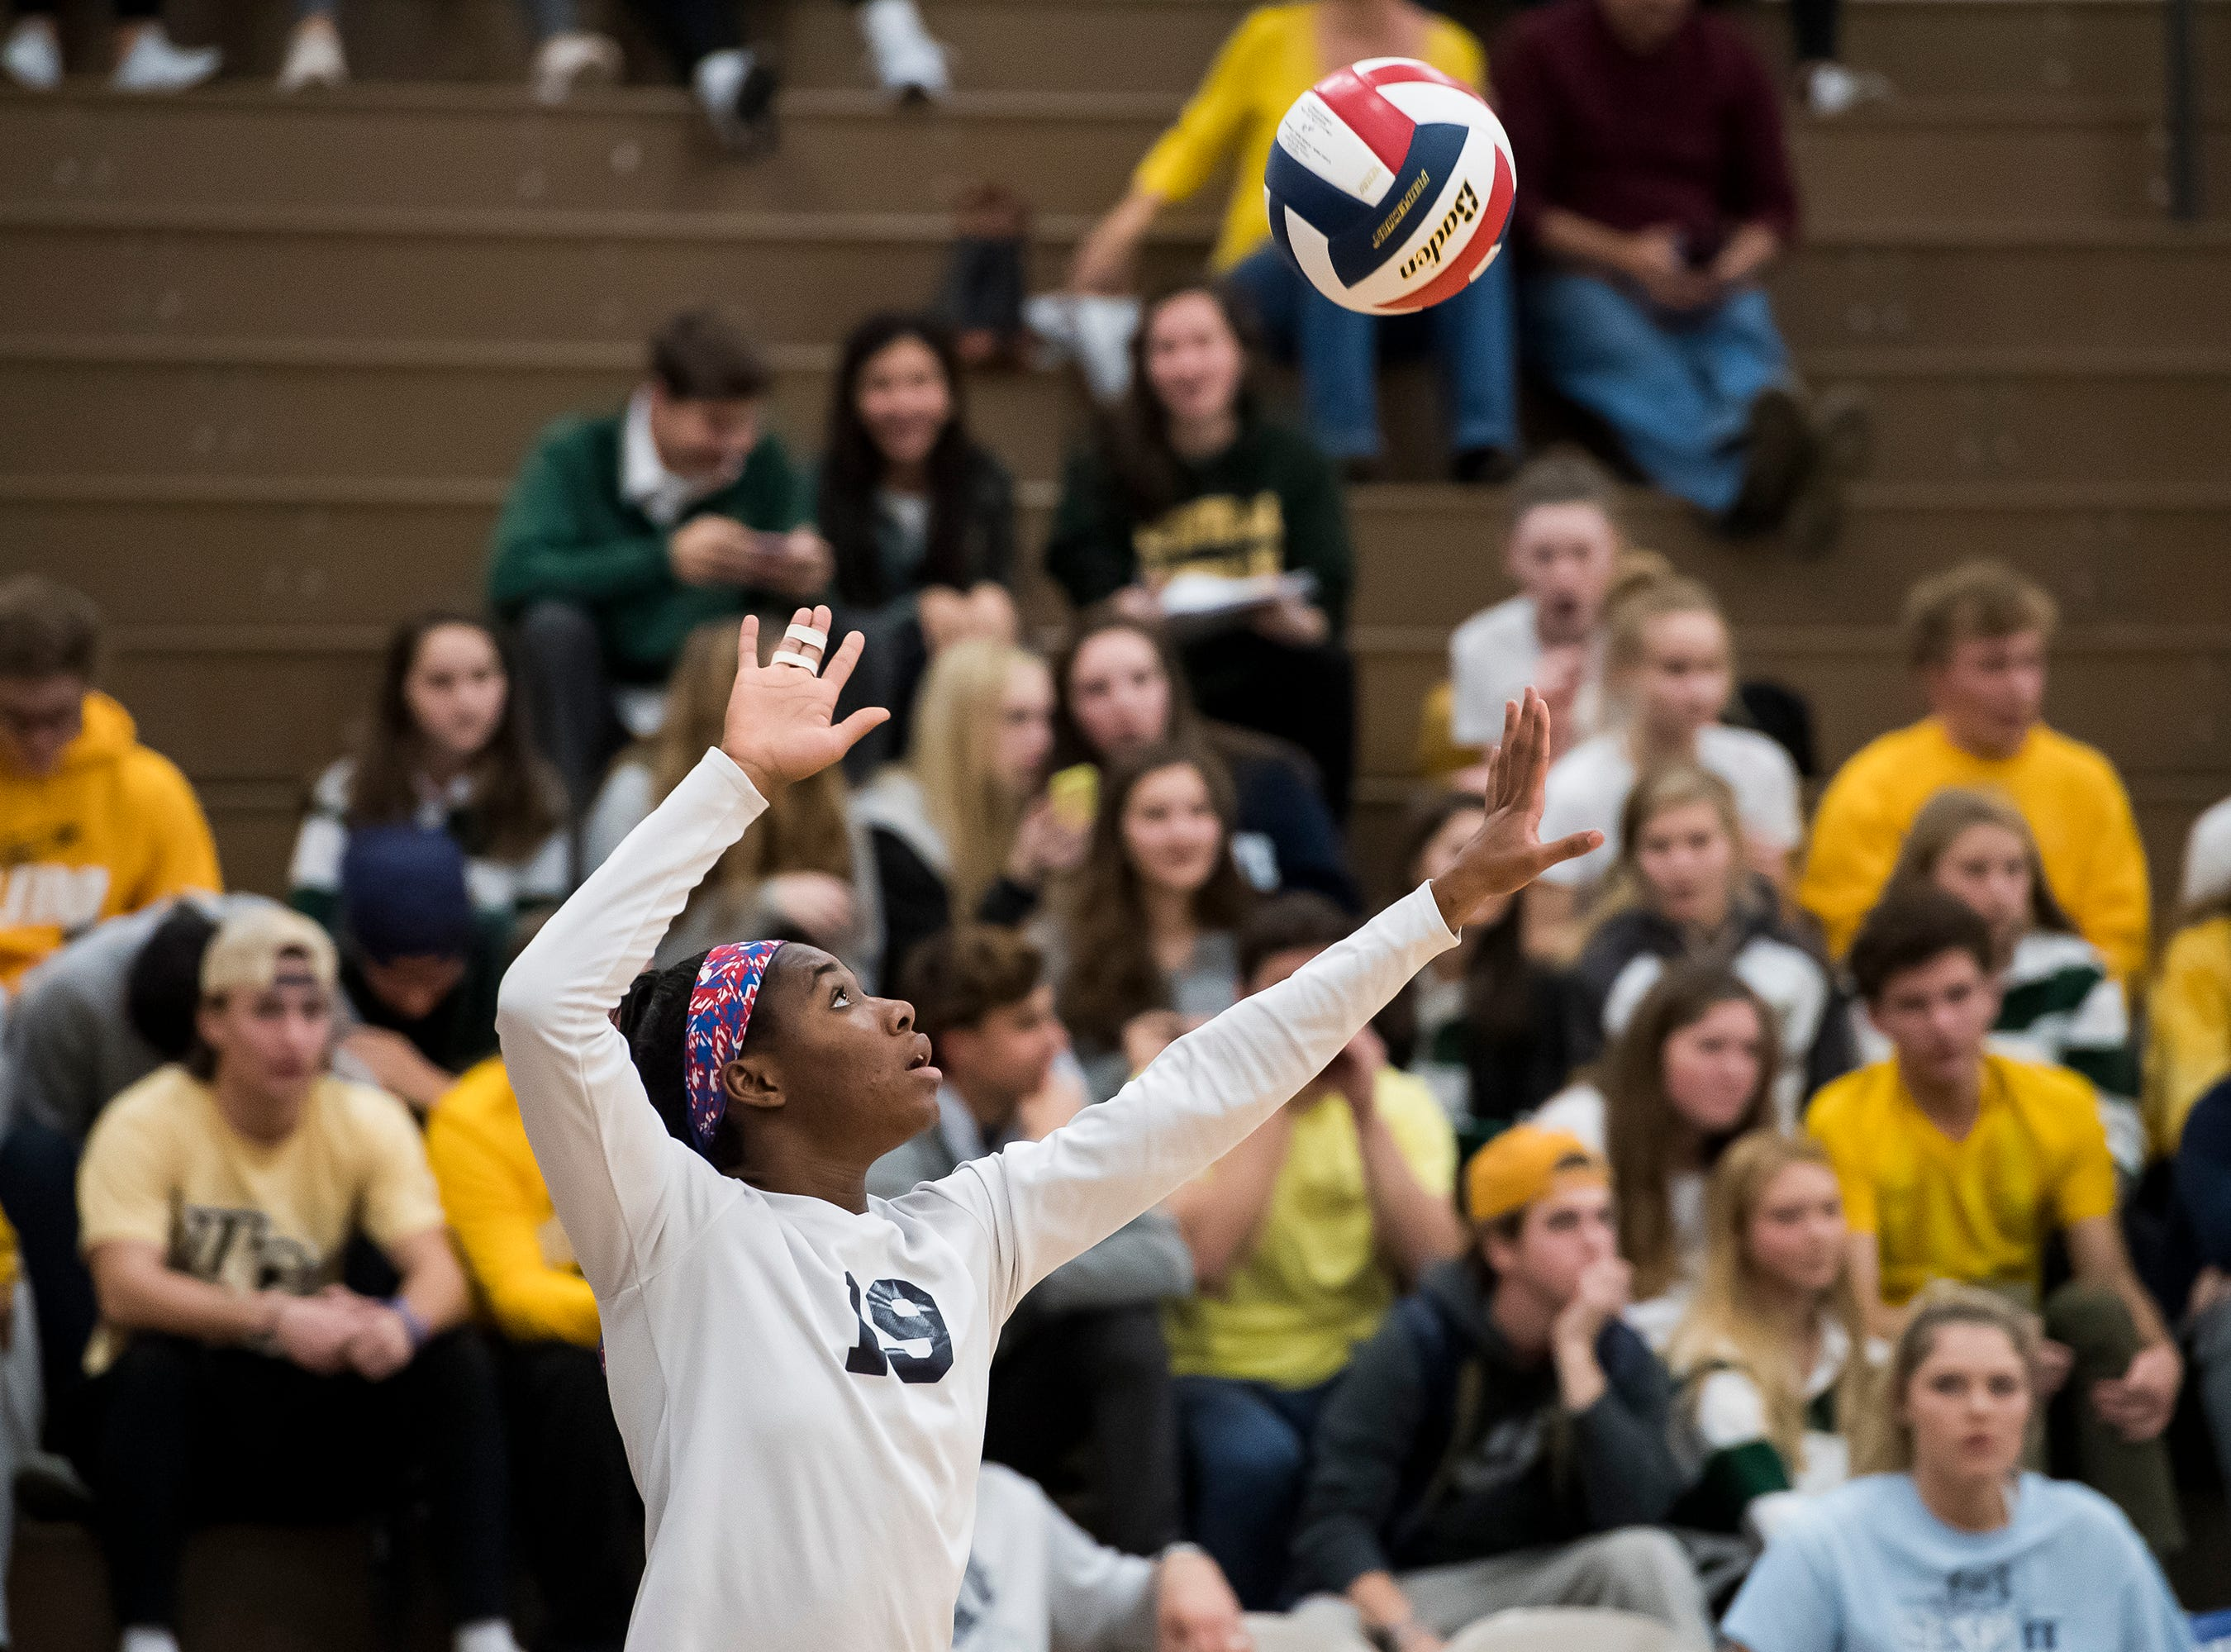 West York's Tesia Thomas serves to Allentown Central Catholic in a PIAA 3A semifinal game at Exeter Township High School in Reading on Tuesday, November 13, 2018.